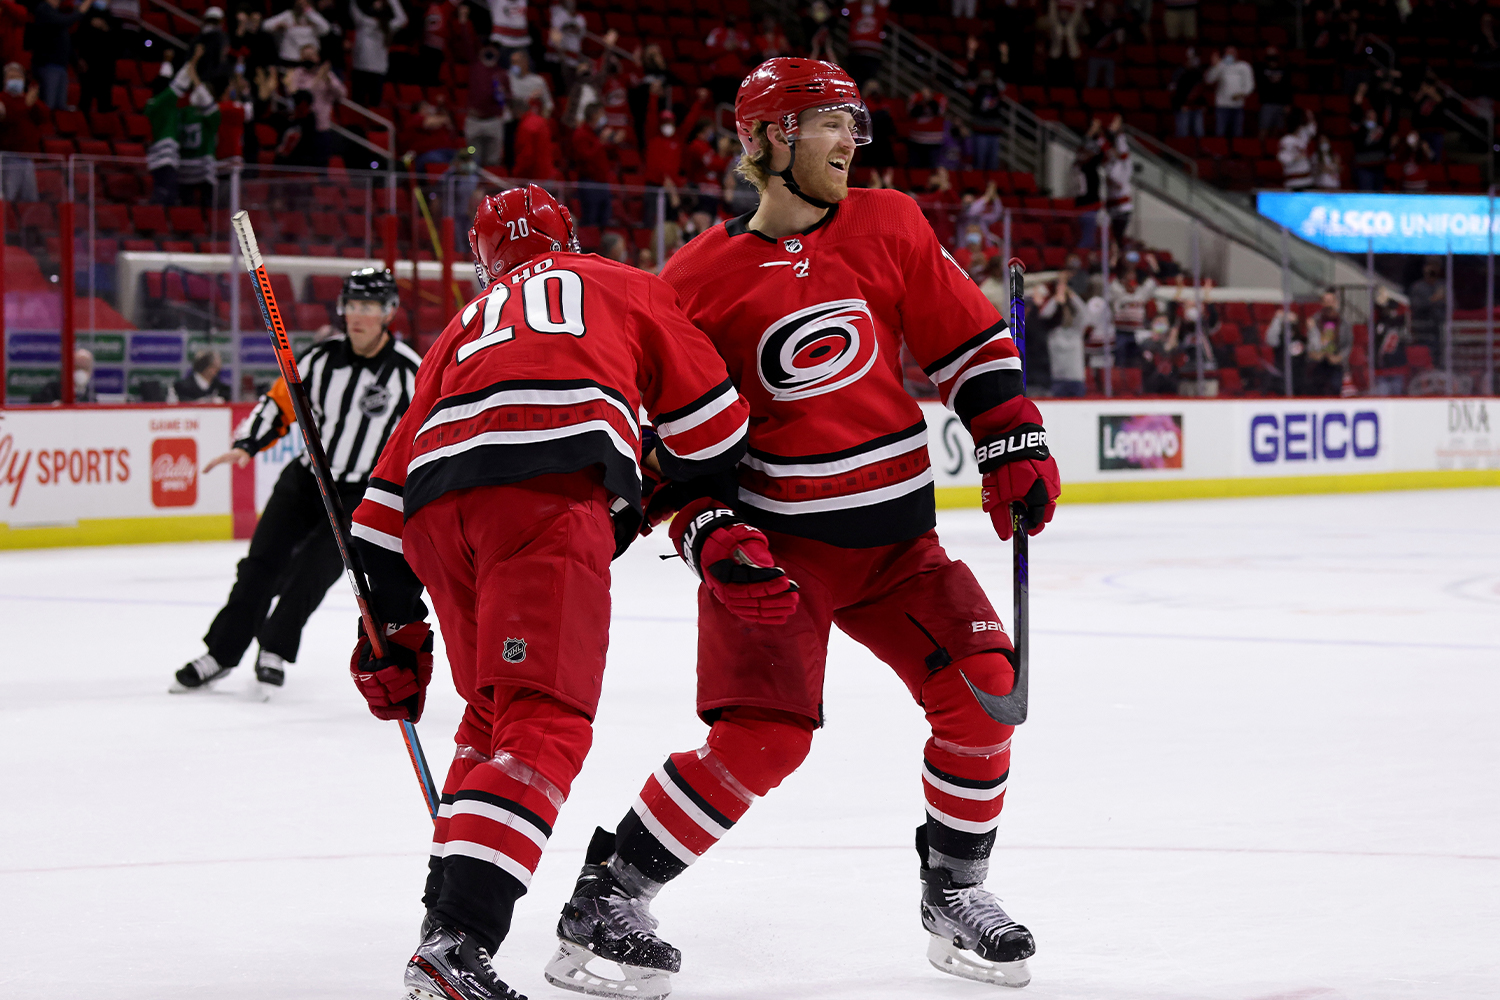 Dougie Hamilton #19 of the Carolina Hurricanes scores a goal in overtime and celebrates with teammate Sebastian Aho #20 during an NHL game against the Columbus Blue Jackets on May 1, 2021